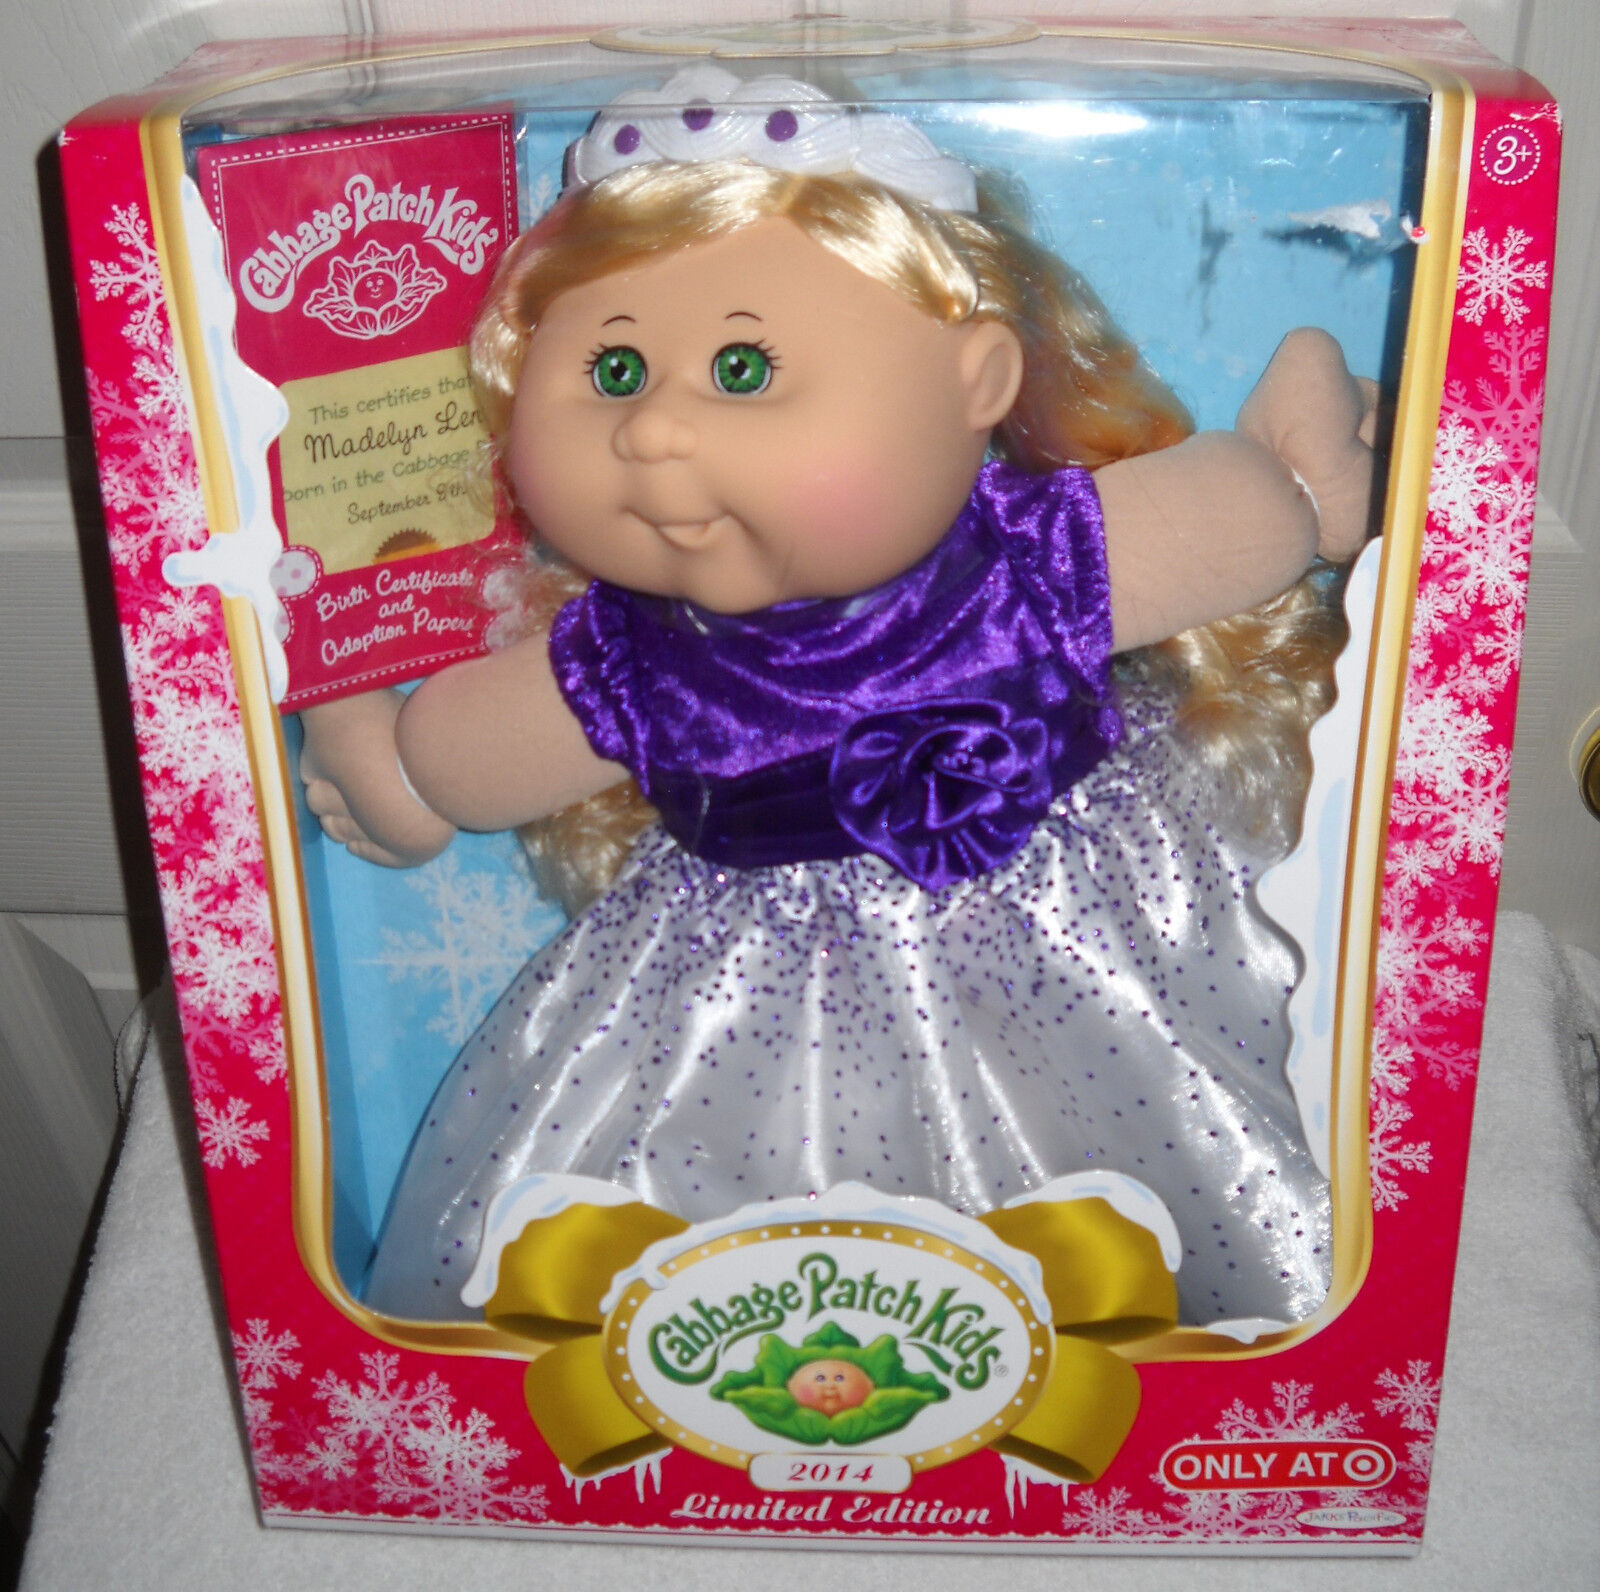 Jakks Pacific Target almacena 2014 Cabbage Patch Kids vacaciones Madelyn Leni